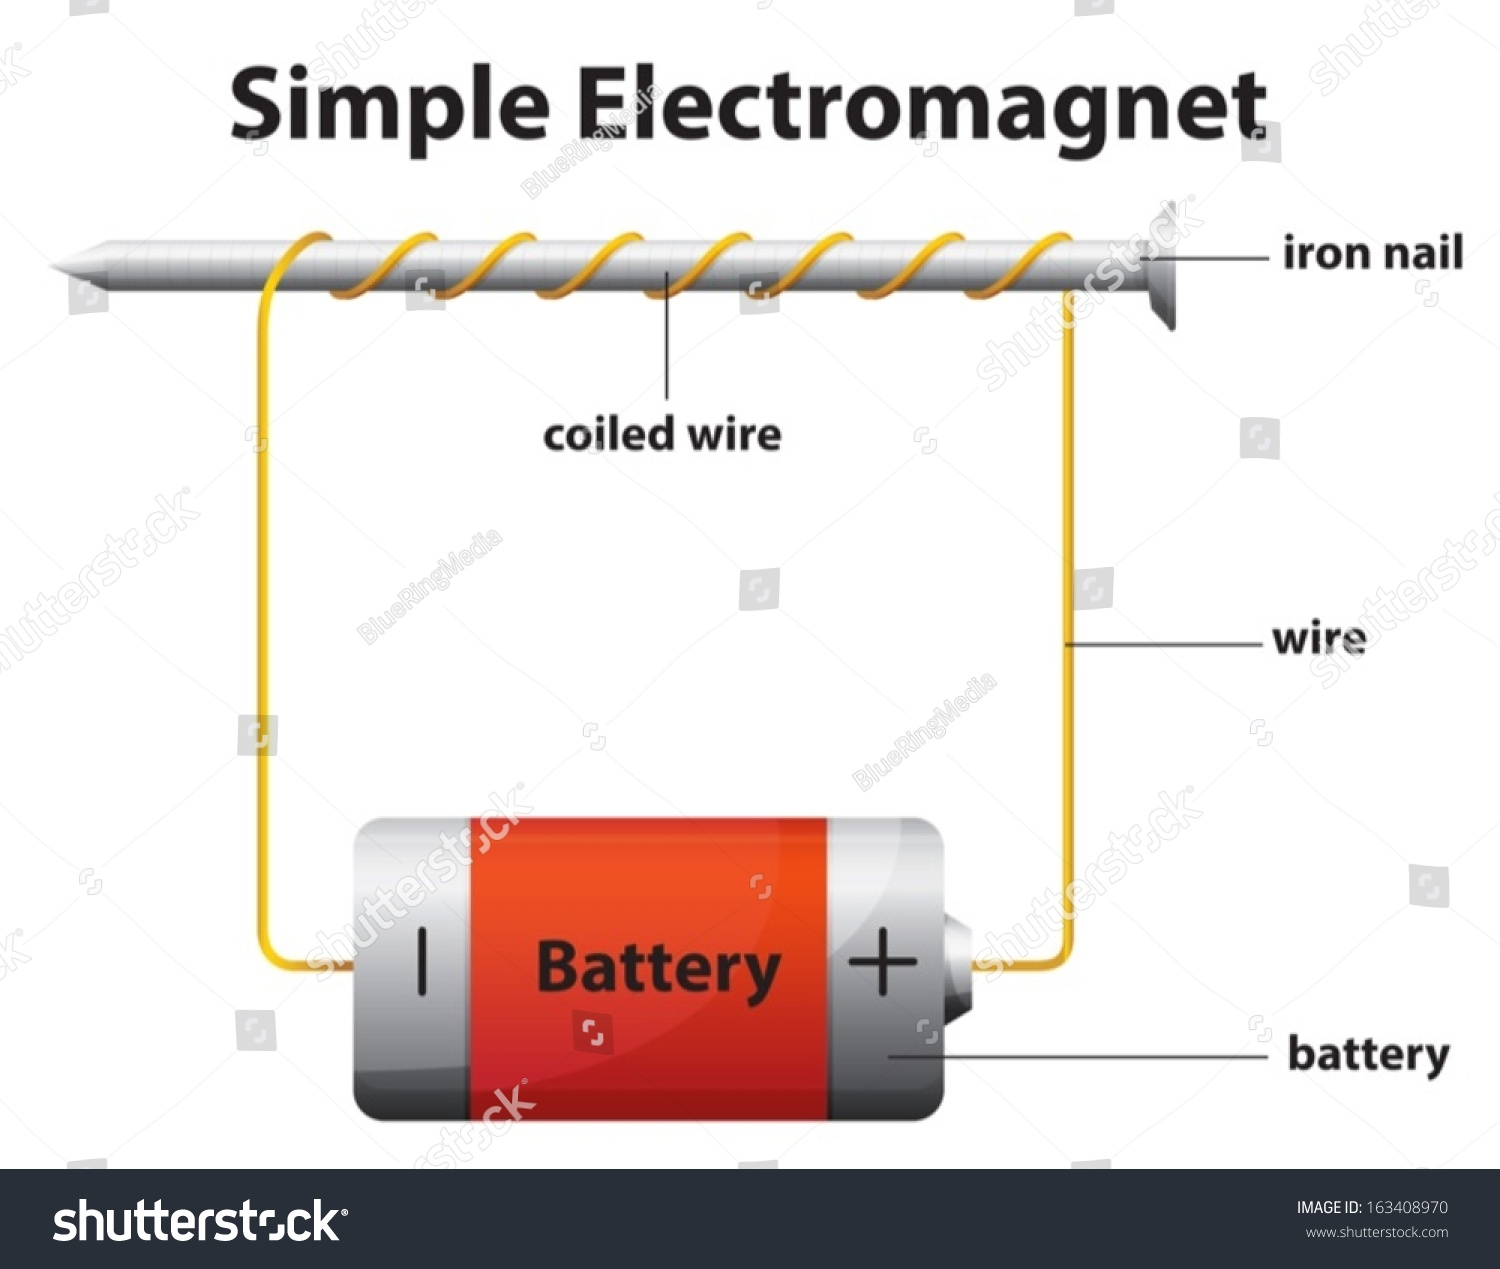 illustration simple electromagnet on white background stock vector rh shutterstock com Simple Electromagnet simple electromagnet diagram